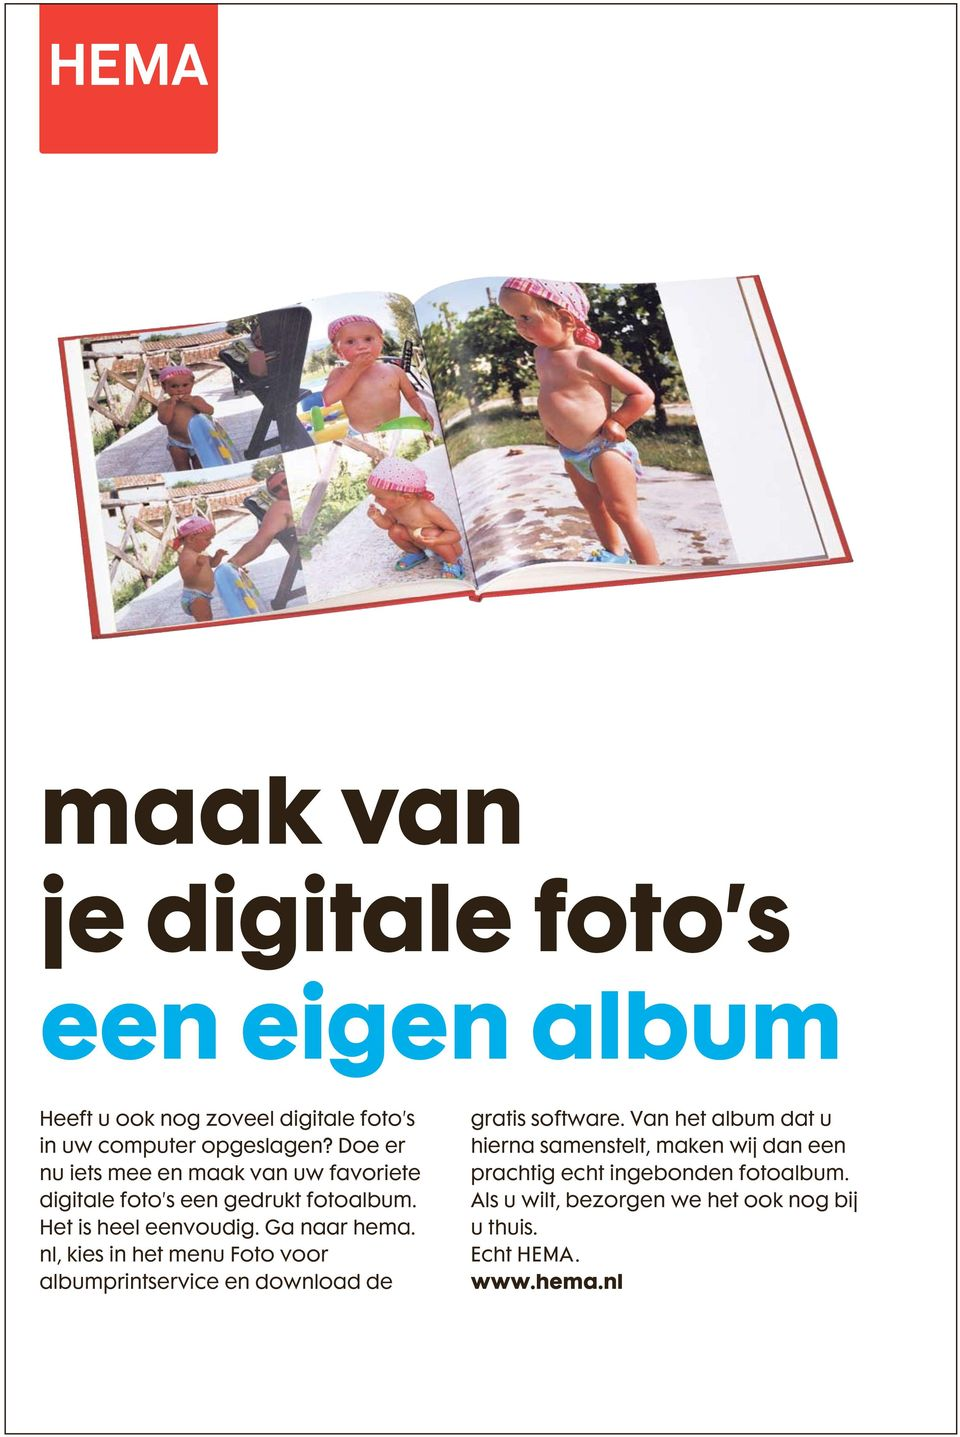 nl, kies in het menu Foto voor albumprintservice en download de gratis software.